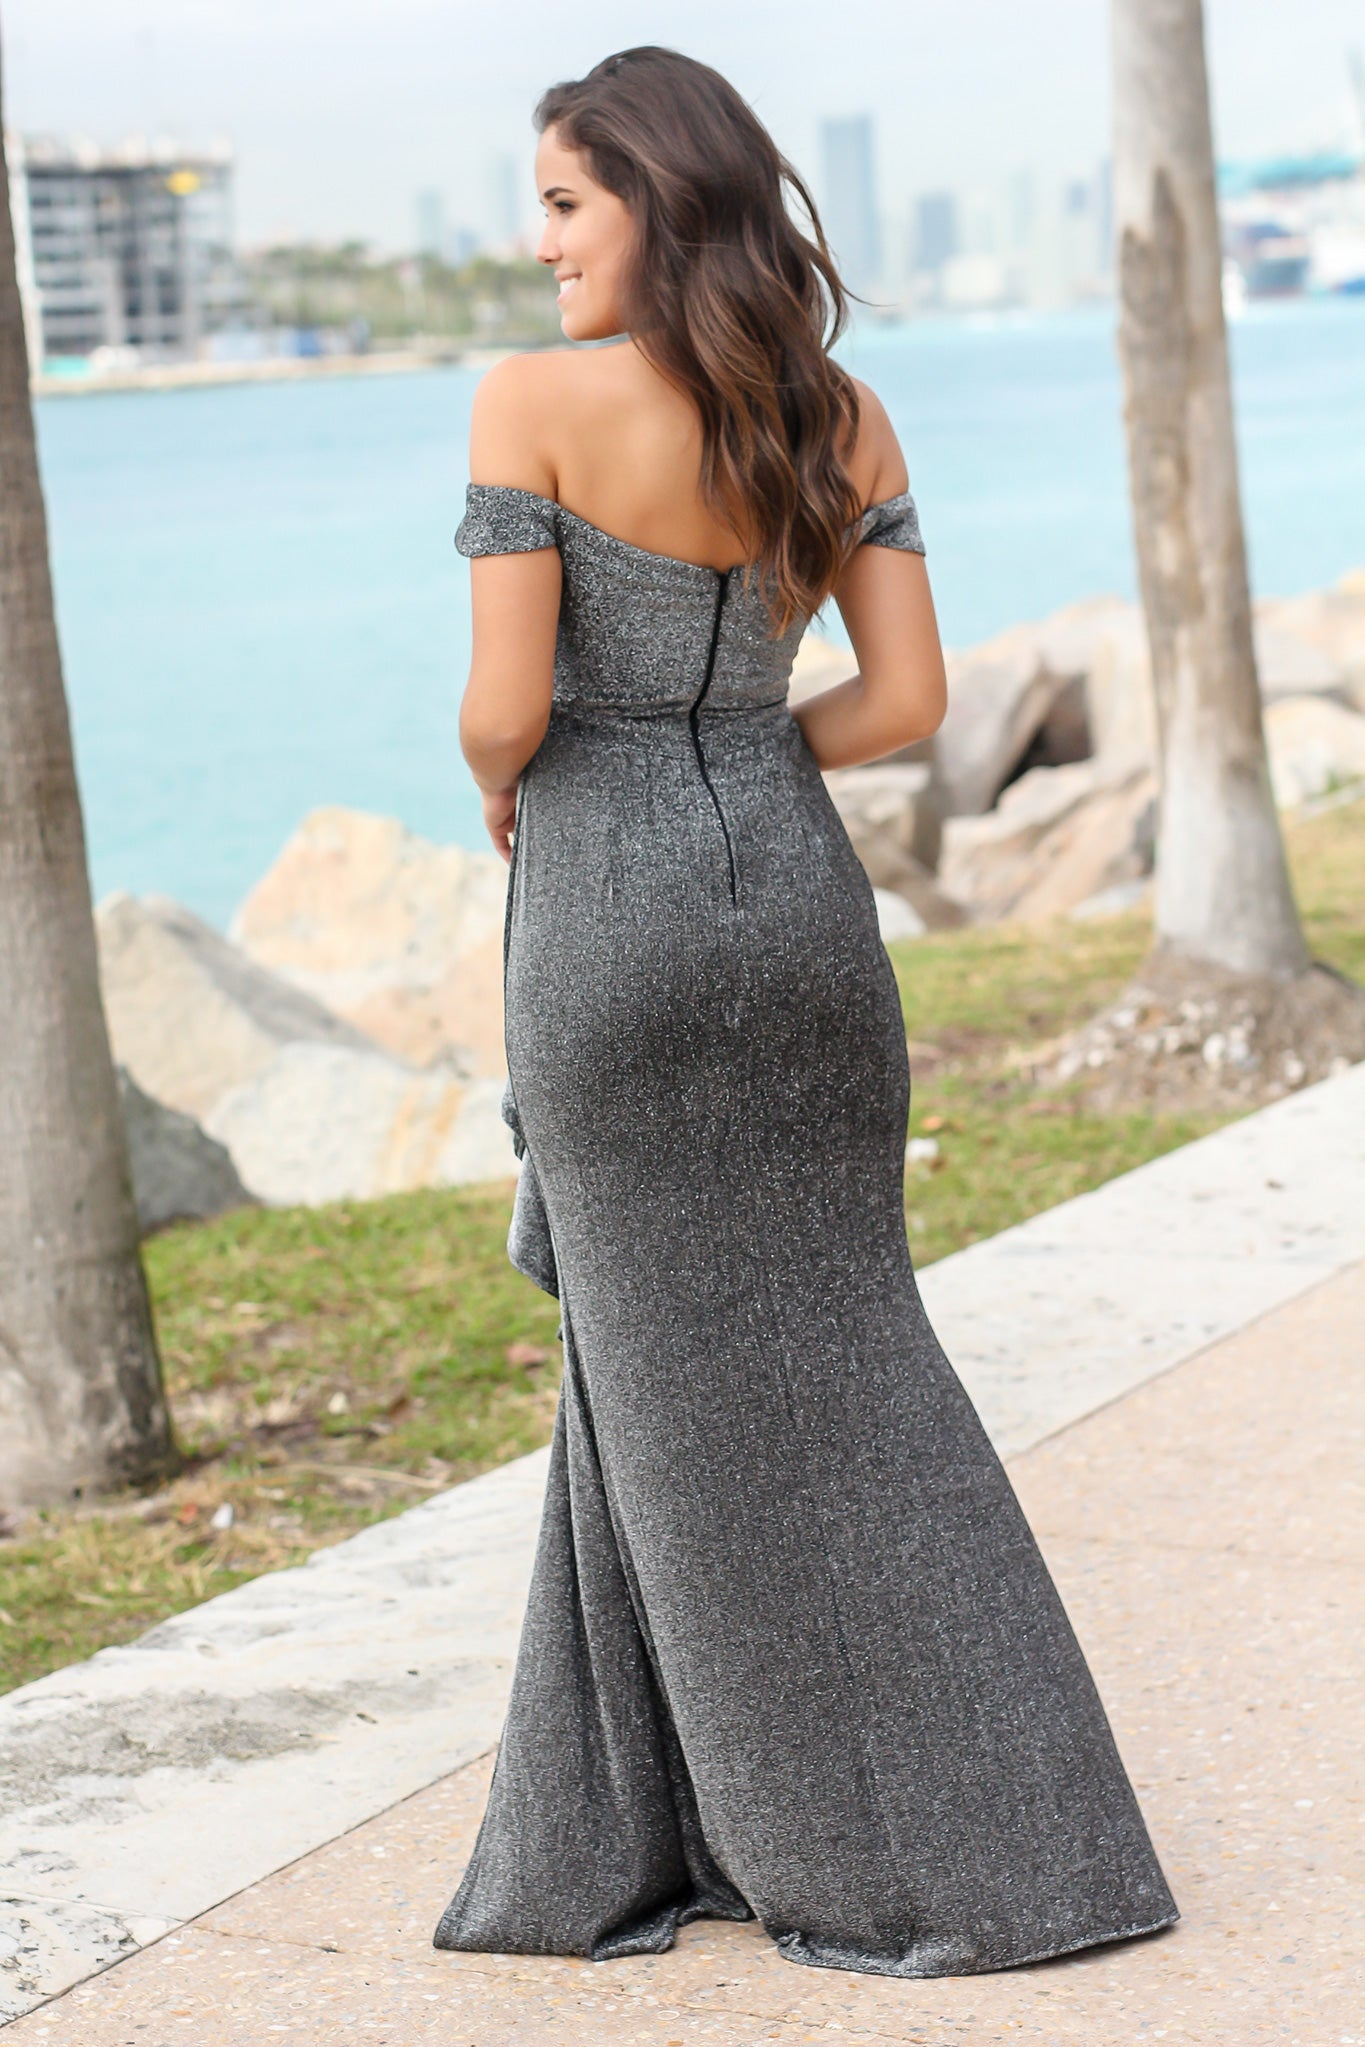 Black and Silver Off Shoulder Maxi Dress